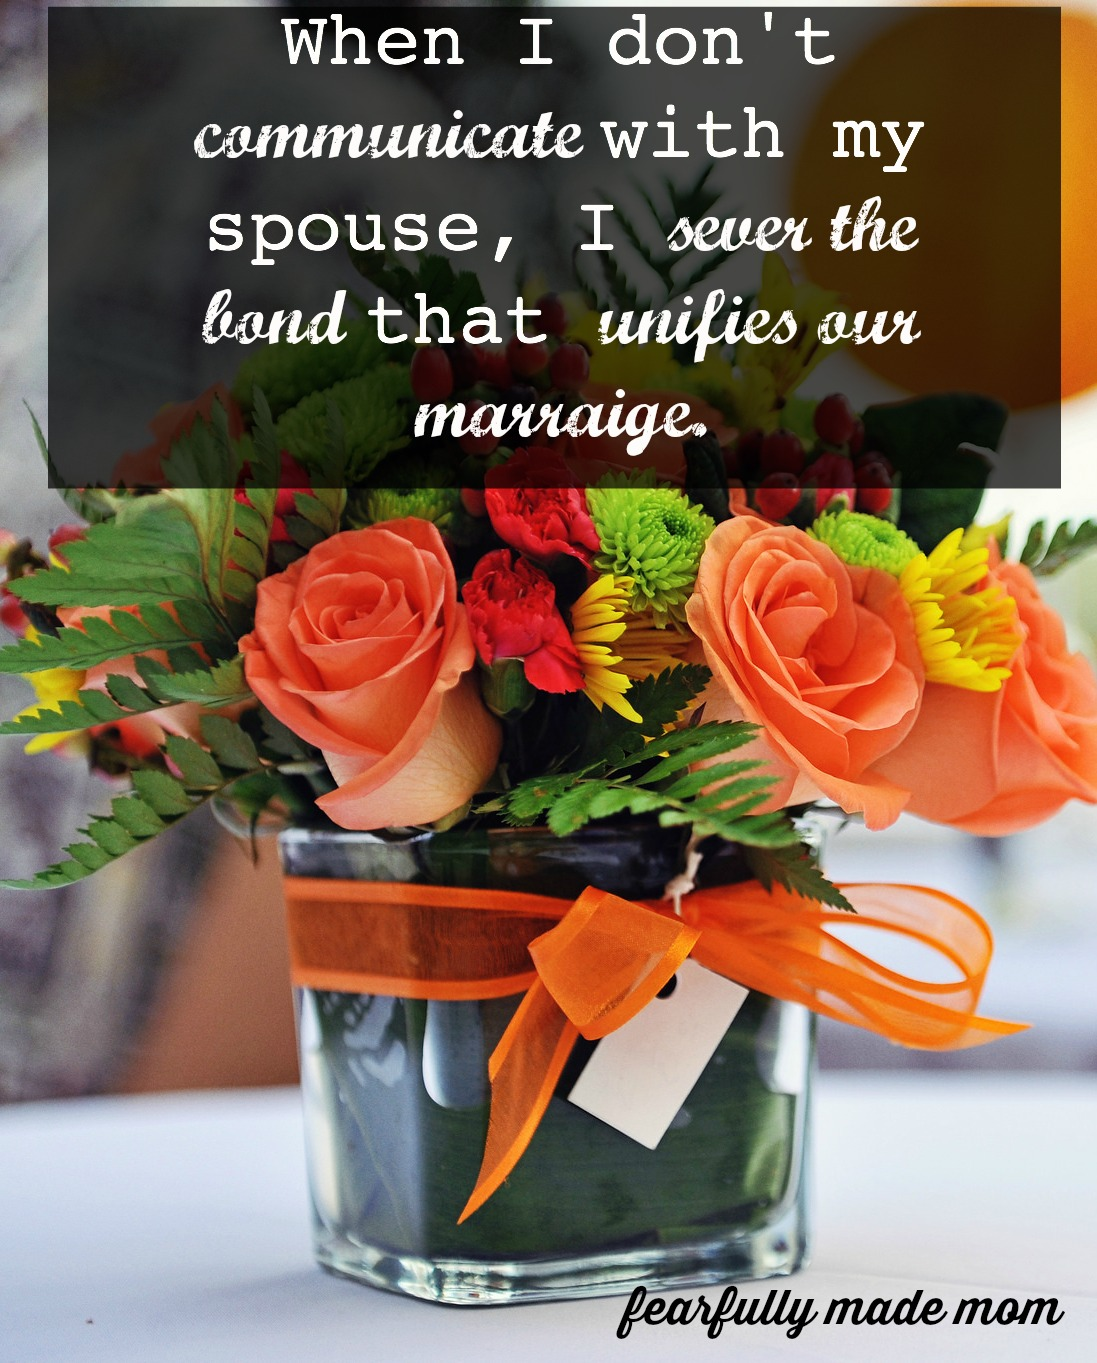 When Communication With Your Spouse Breaks Down